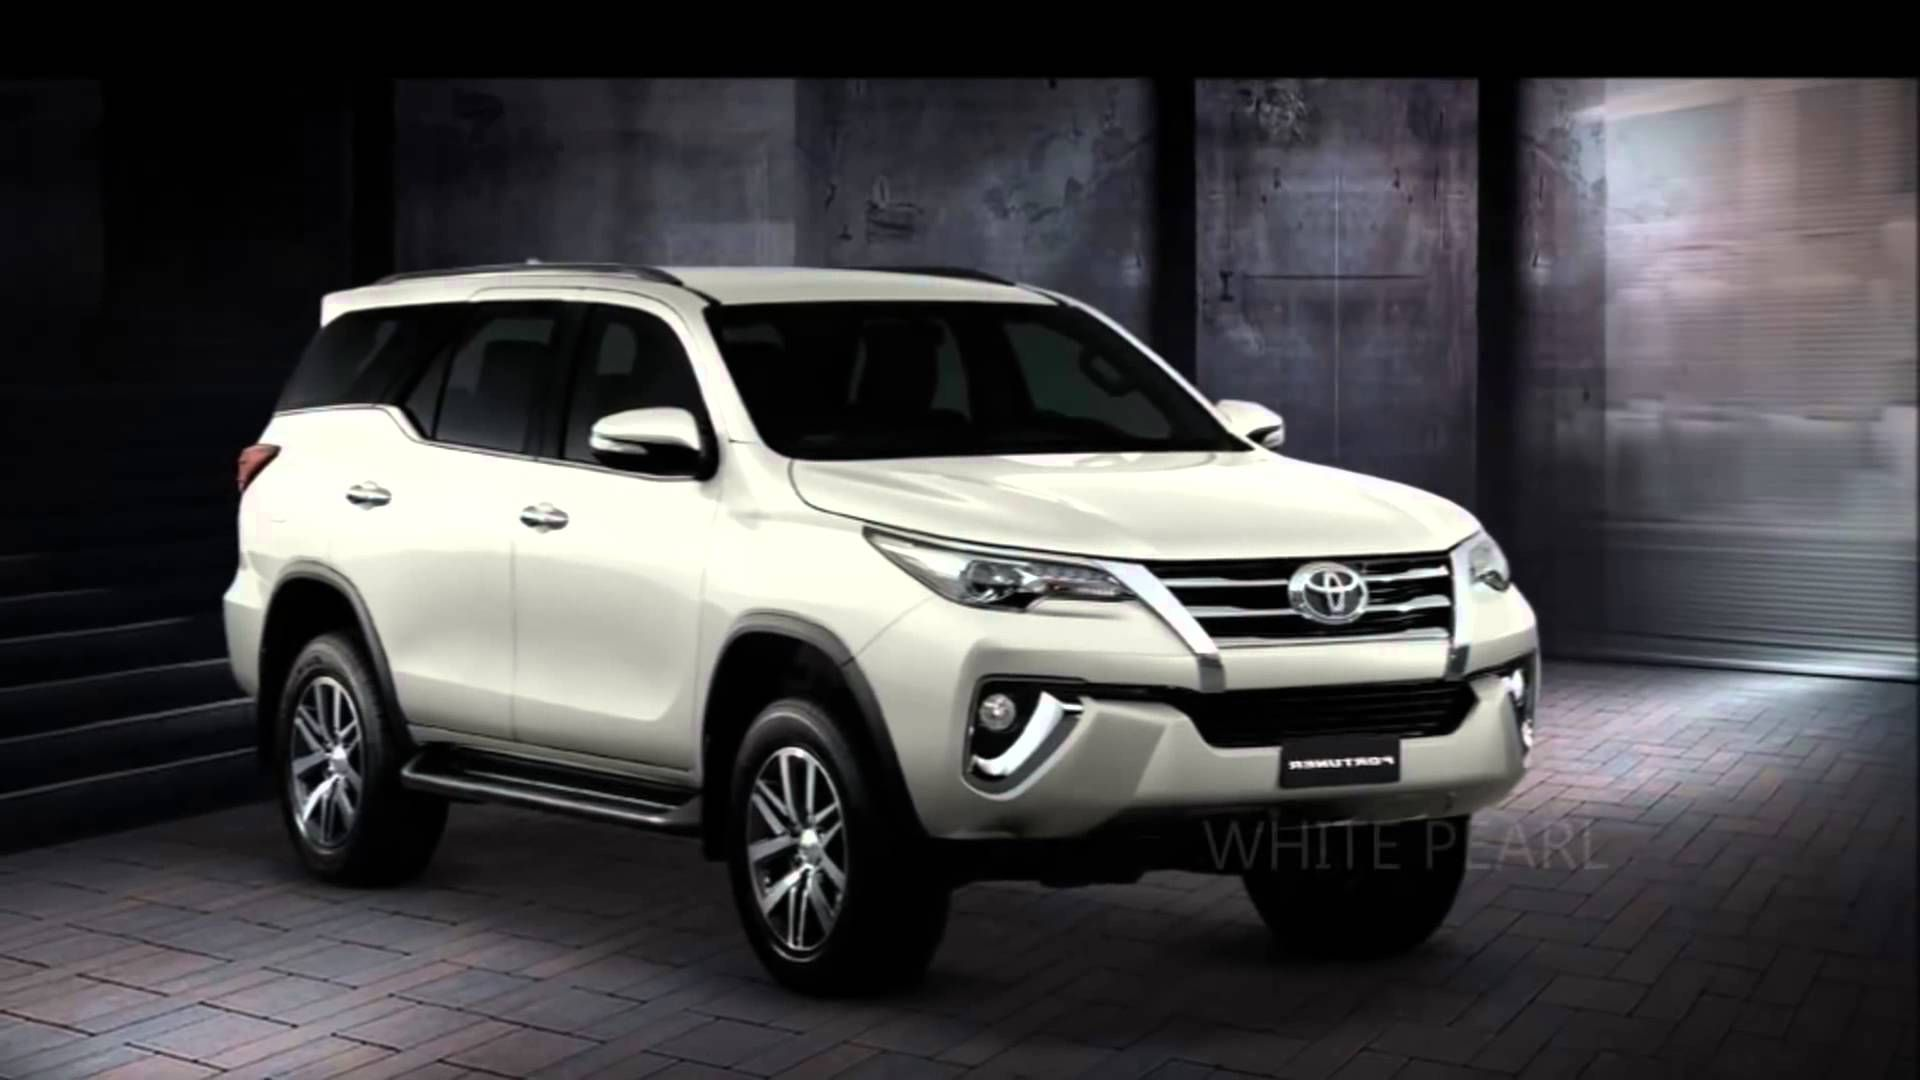 New Toyota Fortuner Wallpaper Hd Car Wallpapers Wallpaper Toyota